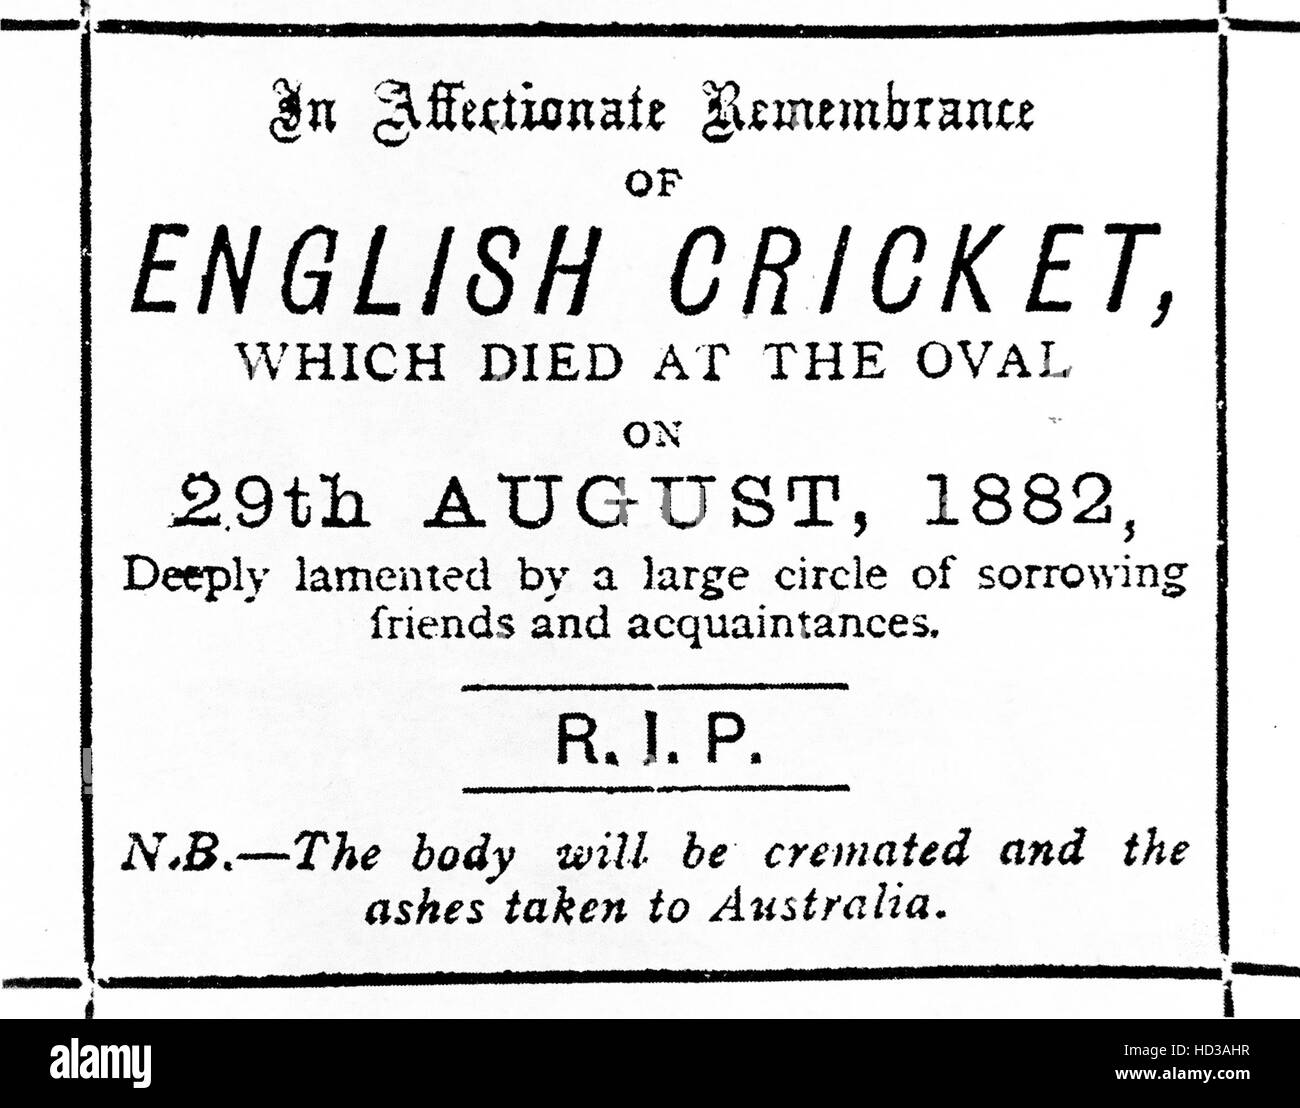 THE ASHES Obituary from The Sporting Times on 2 September